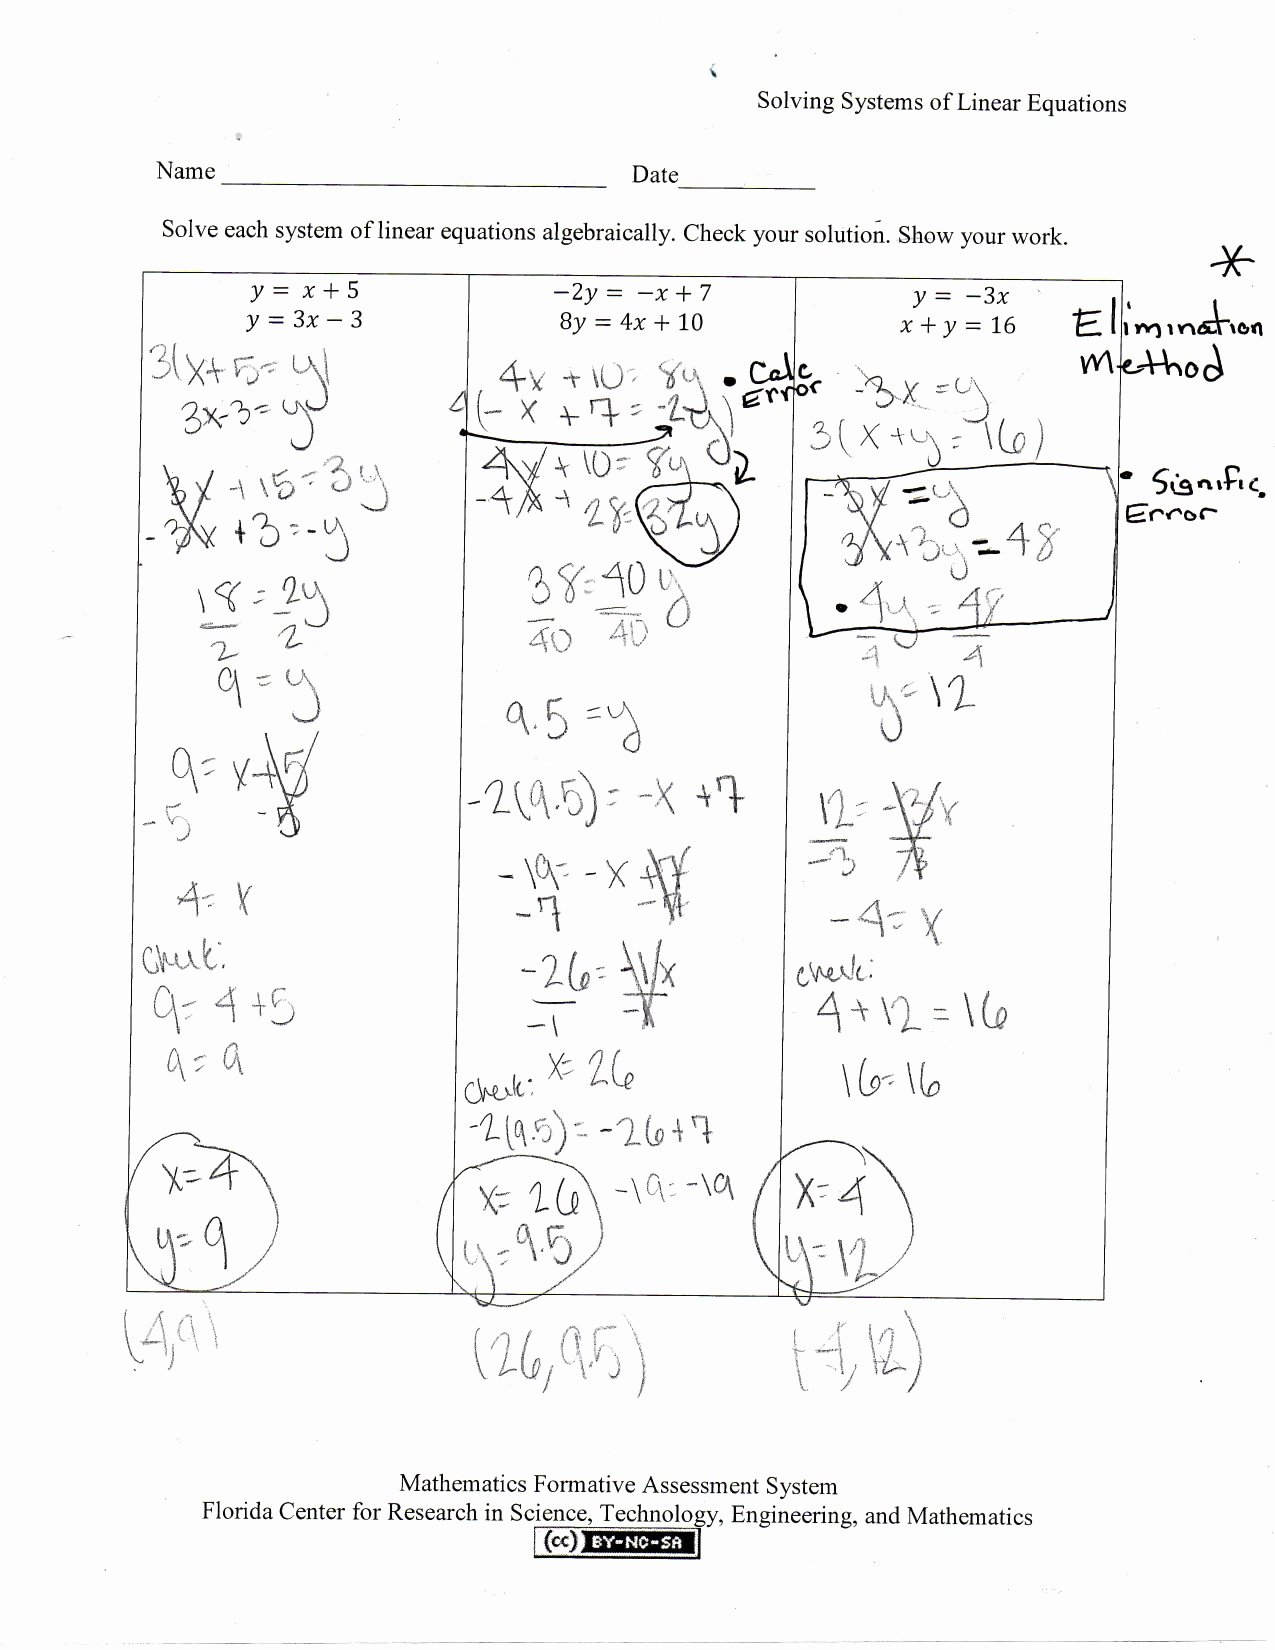 Solving Systems Of Equations Worksheet Inspirational solving Systems Of Linear Equations